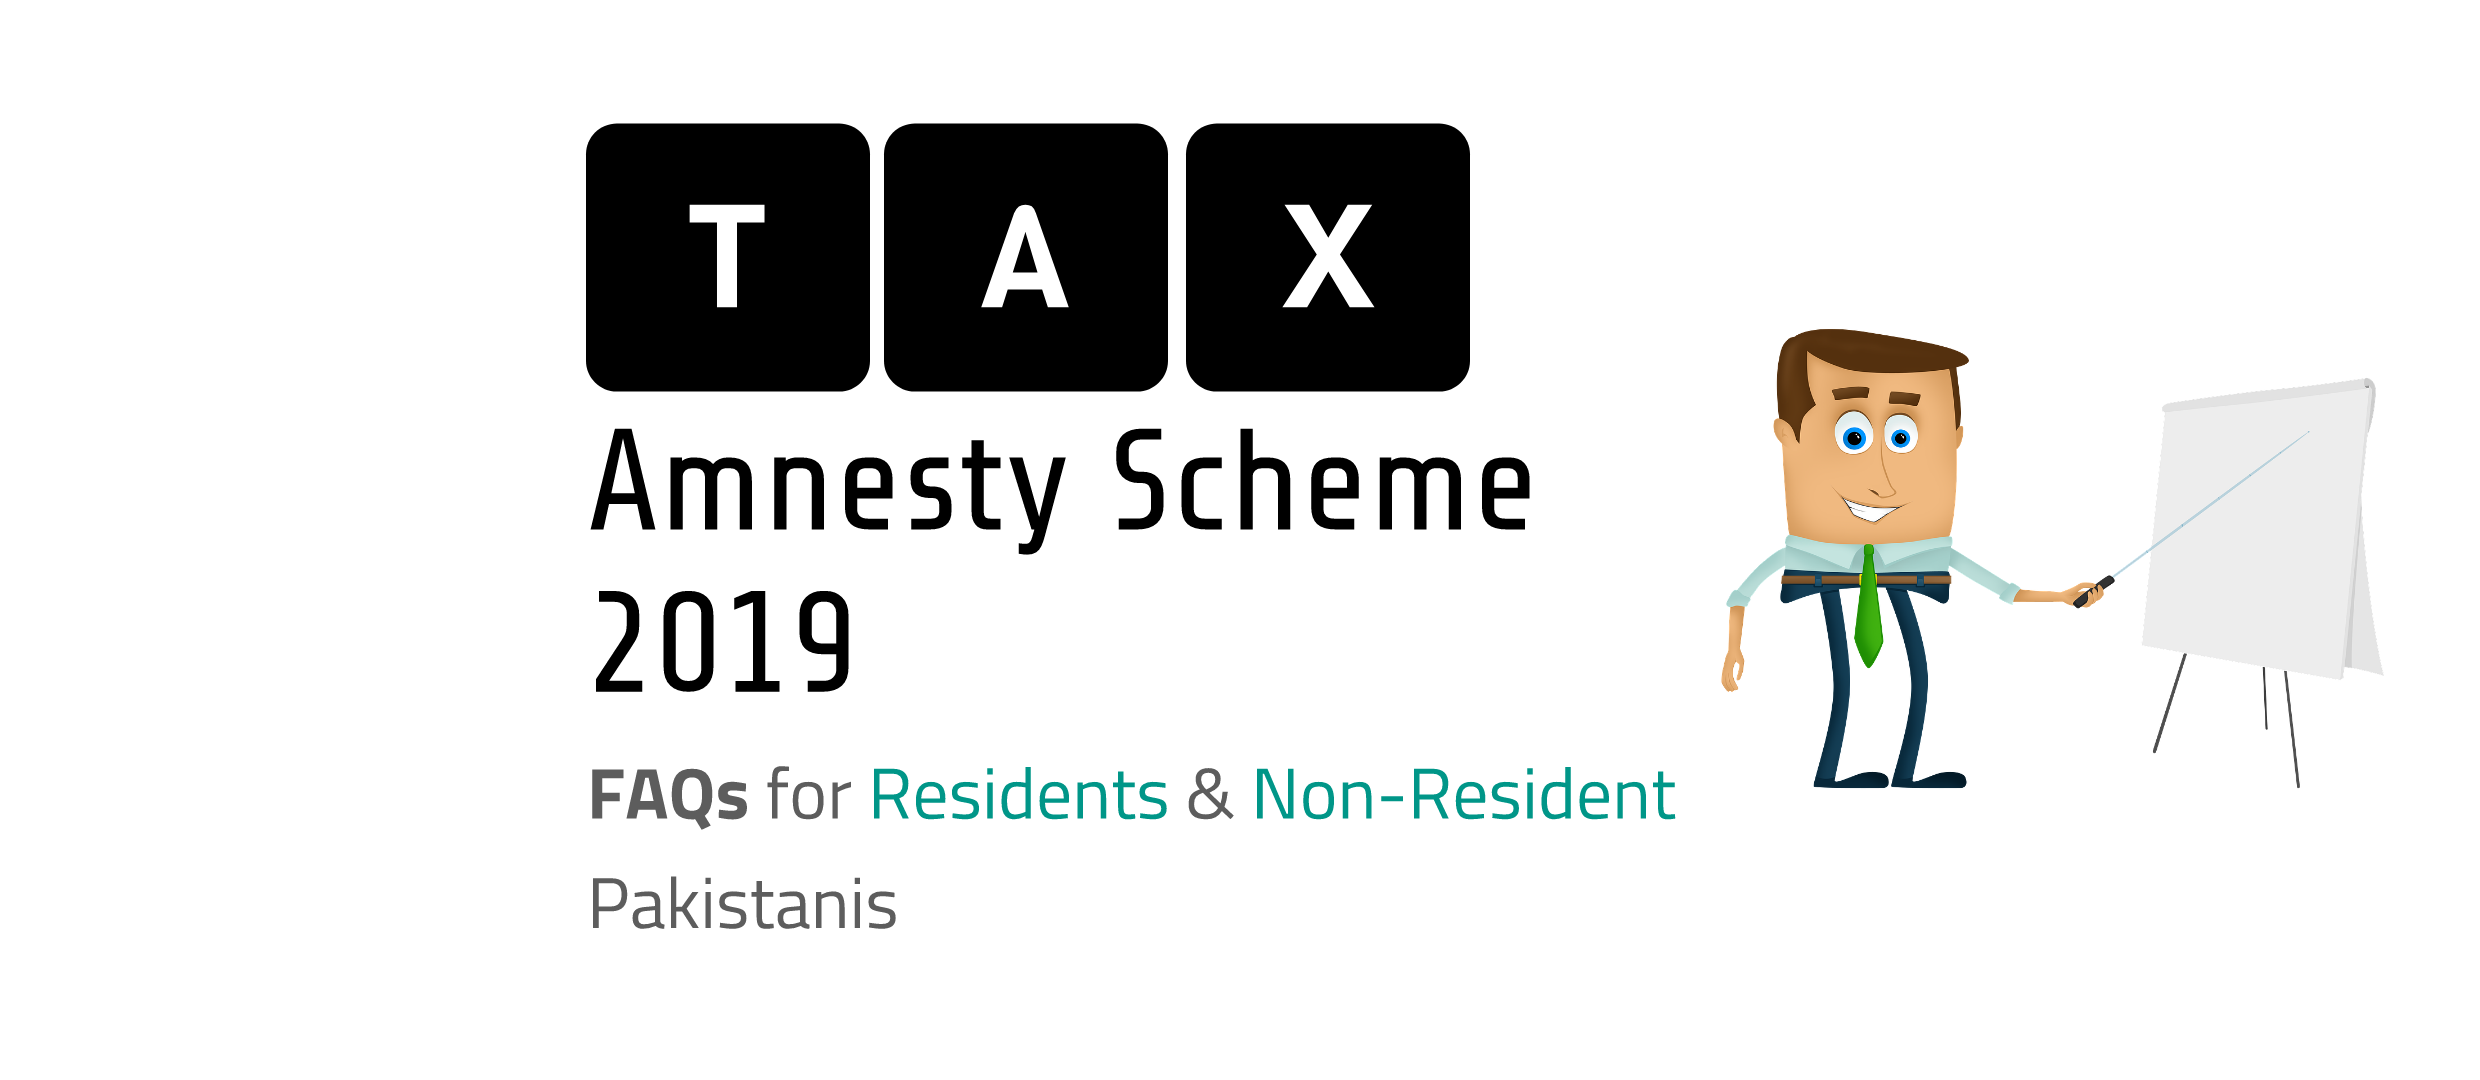 FAQs on Tax Amnesty Scheme 2019 for General Public, Residents, and